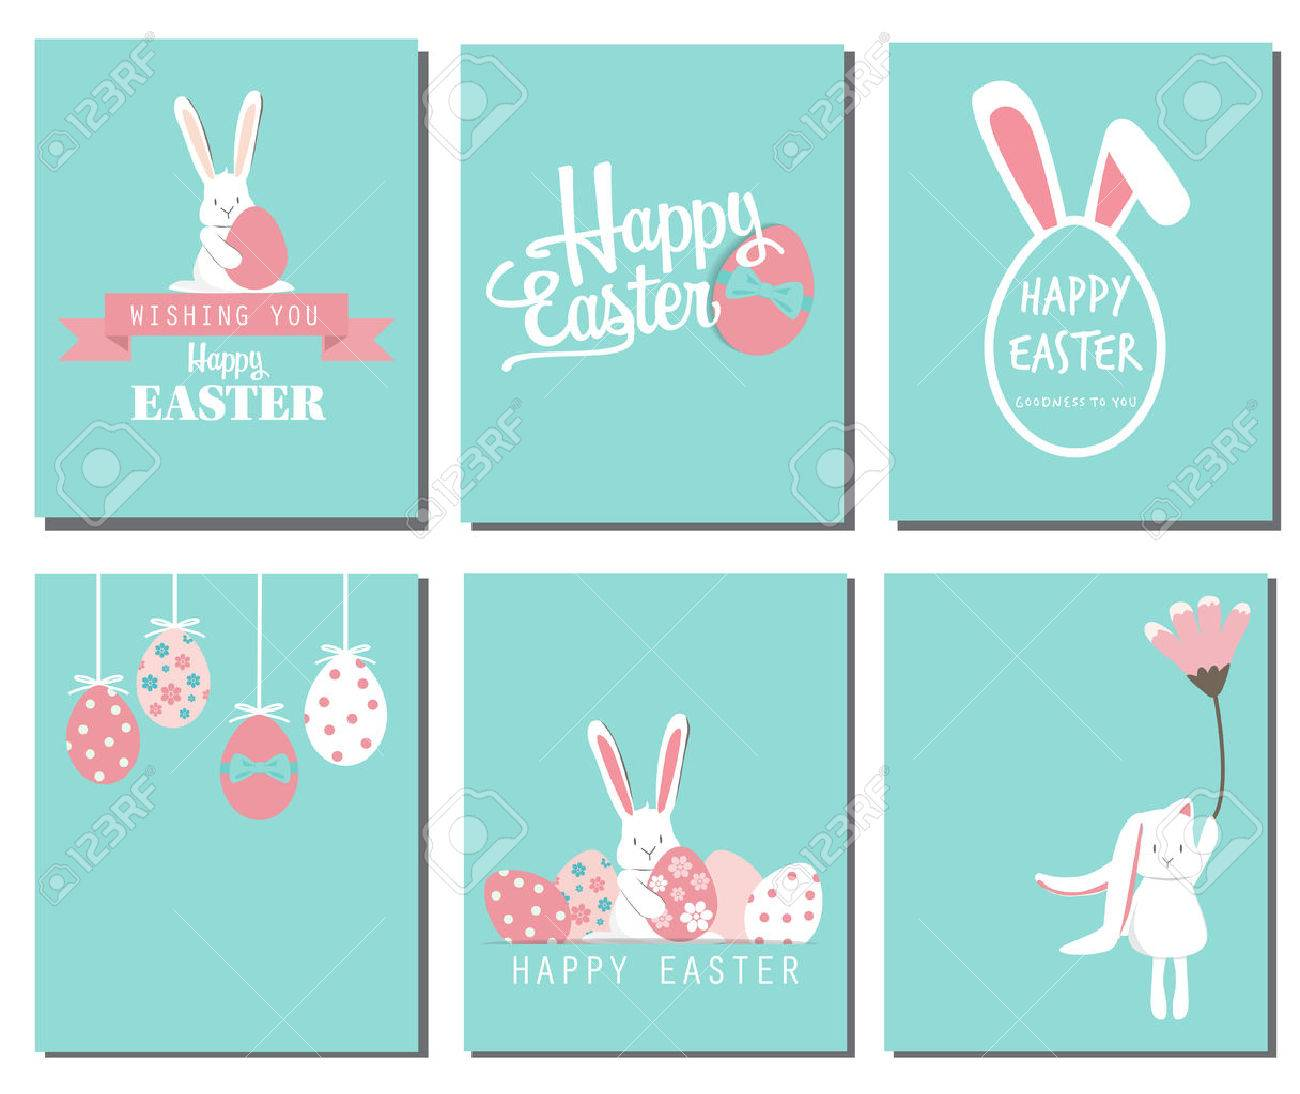 Happy easter day. cute bunny Ears with eggs and text logo on sweet blue background, can be use for greeting card, text can be added. - 53611504